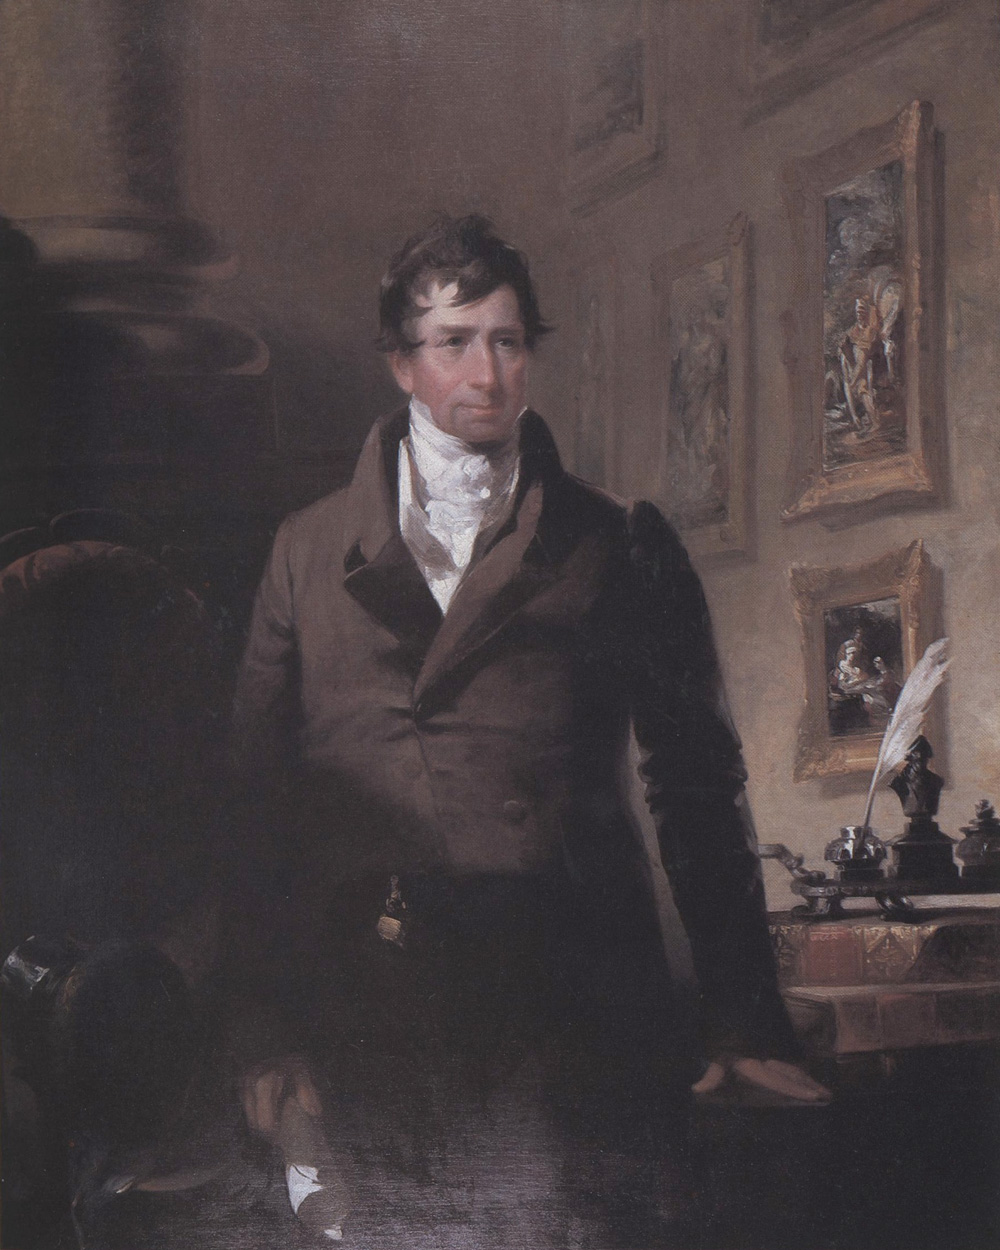 John Neagle, Dr. William Potts Dewees. Oil on canvas, 1833. University of Pennsylvania School of Medicine.